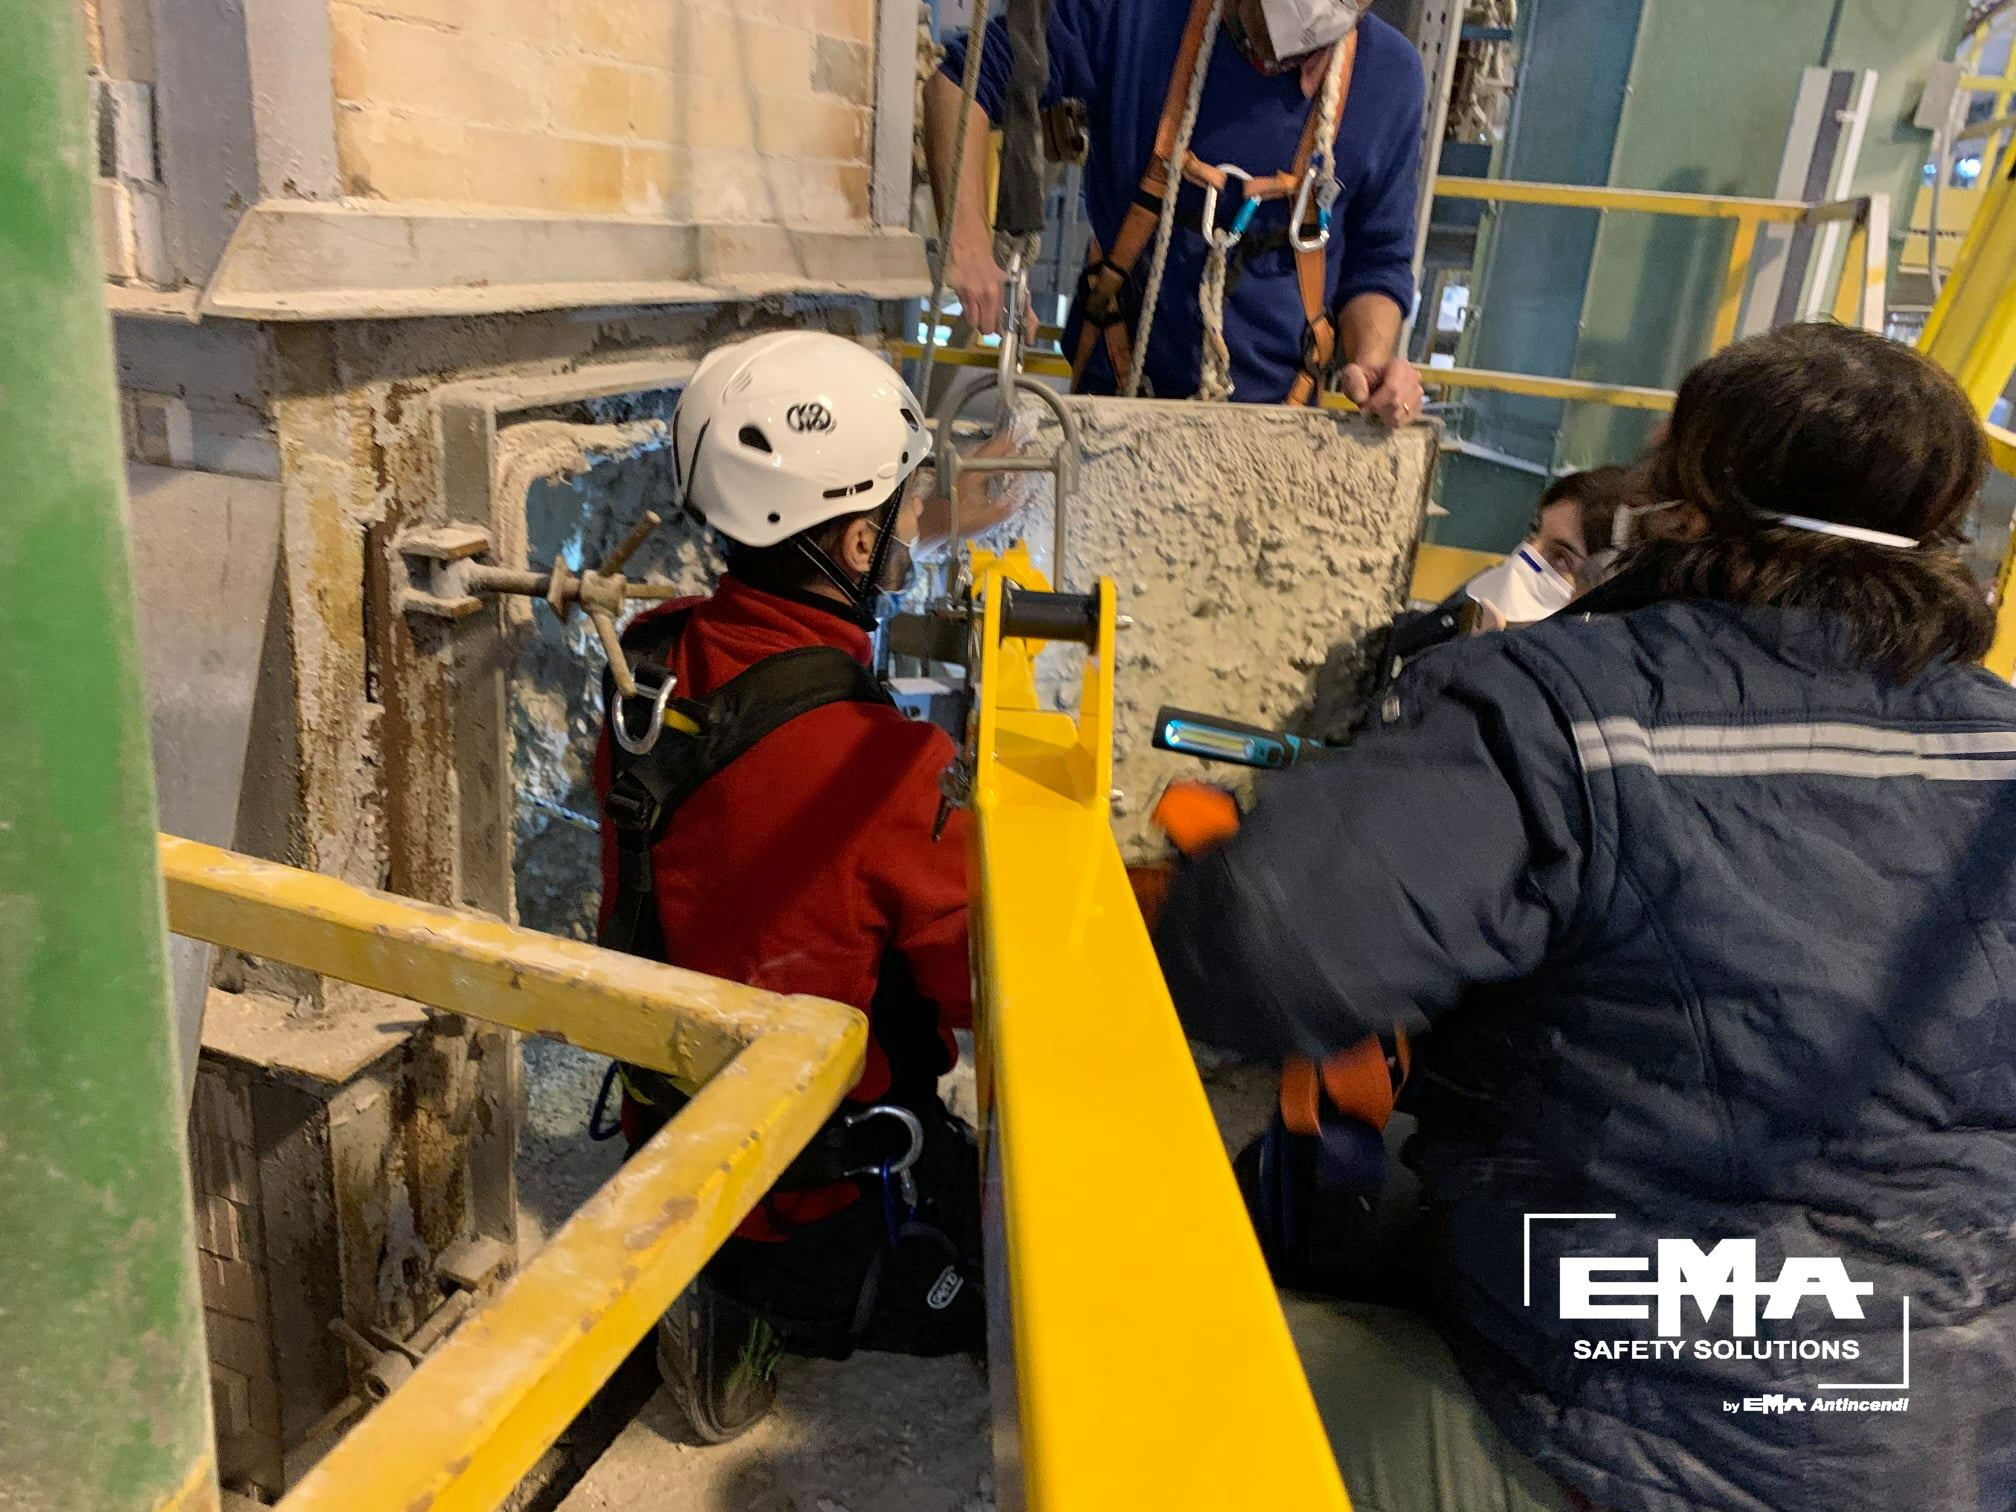 EMA Safety Solutions by Ema Antincendi 5